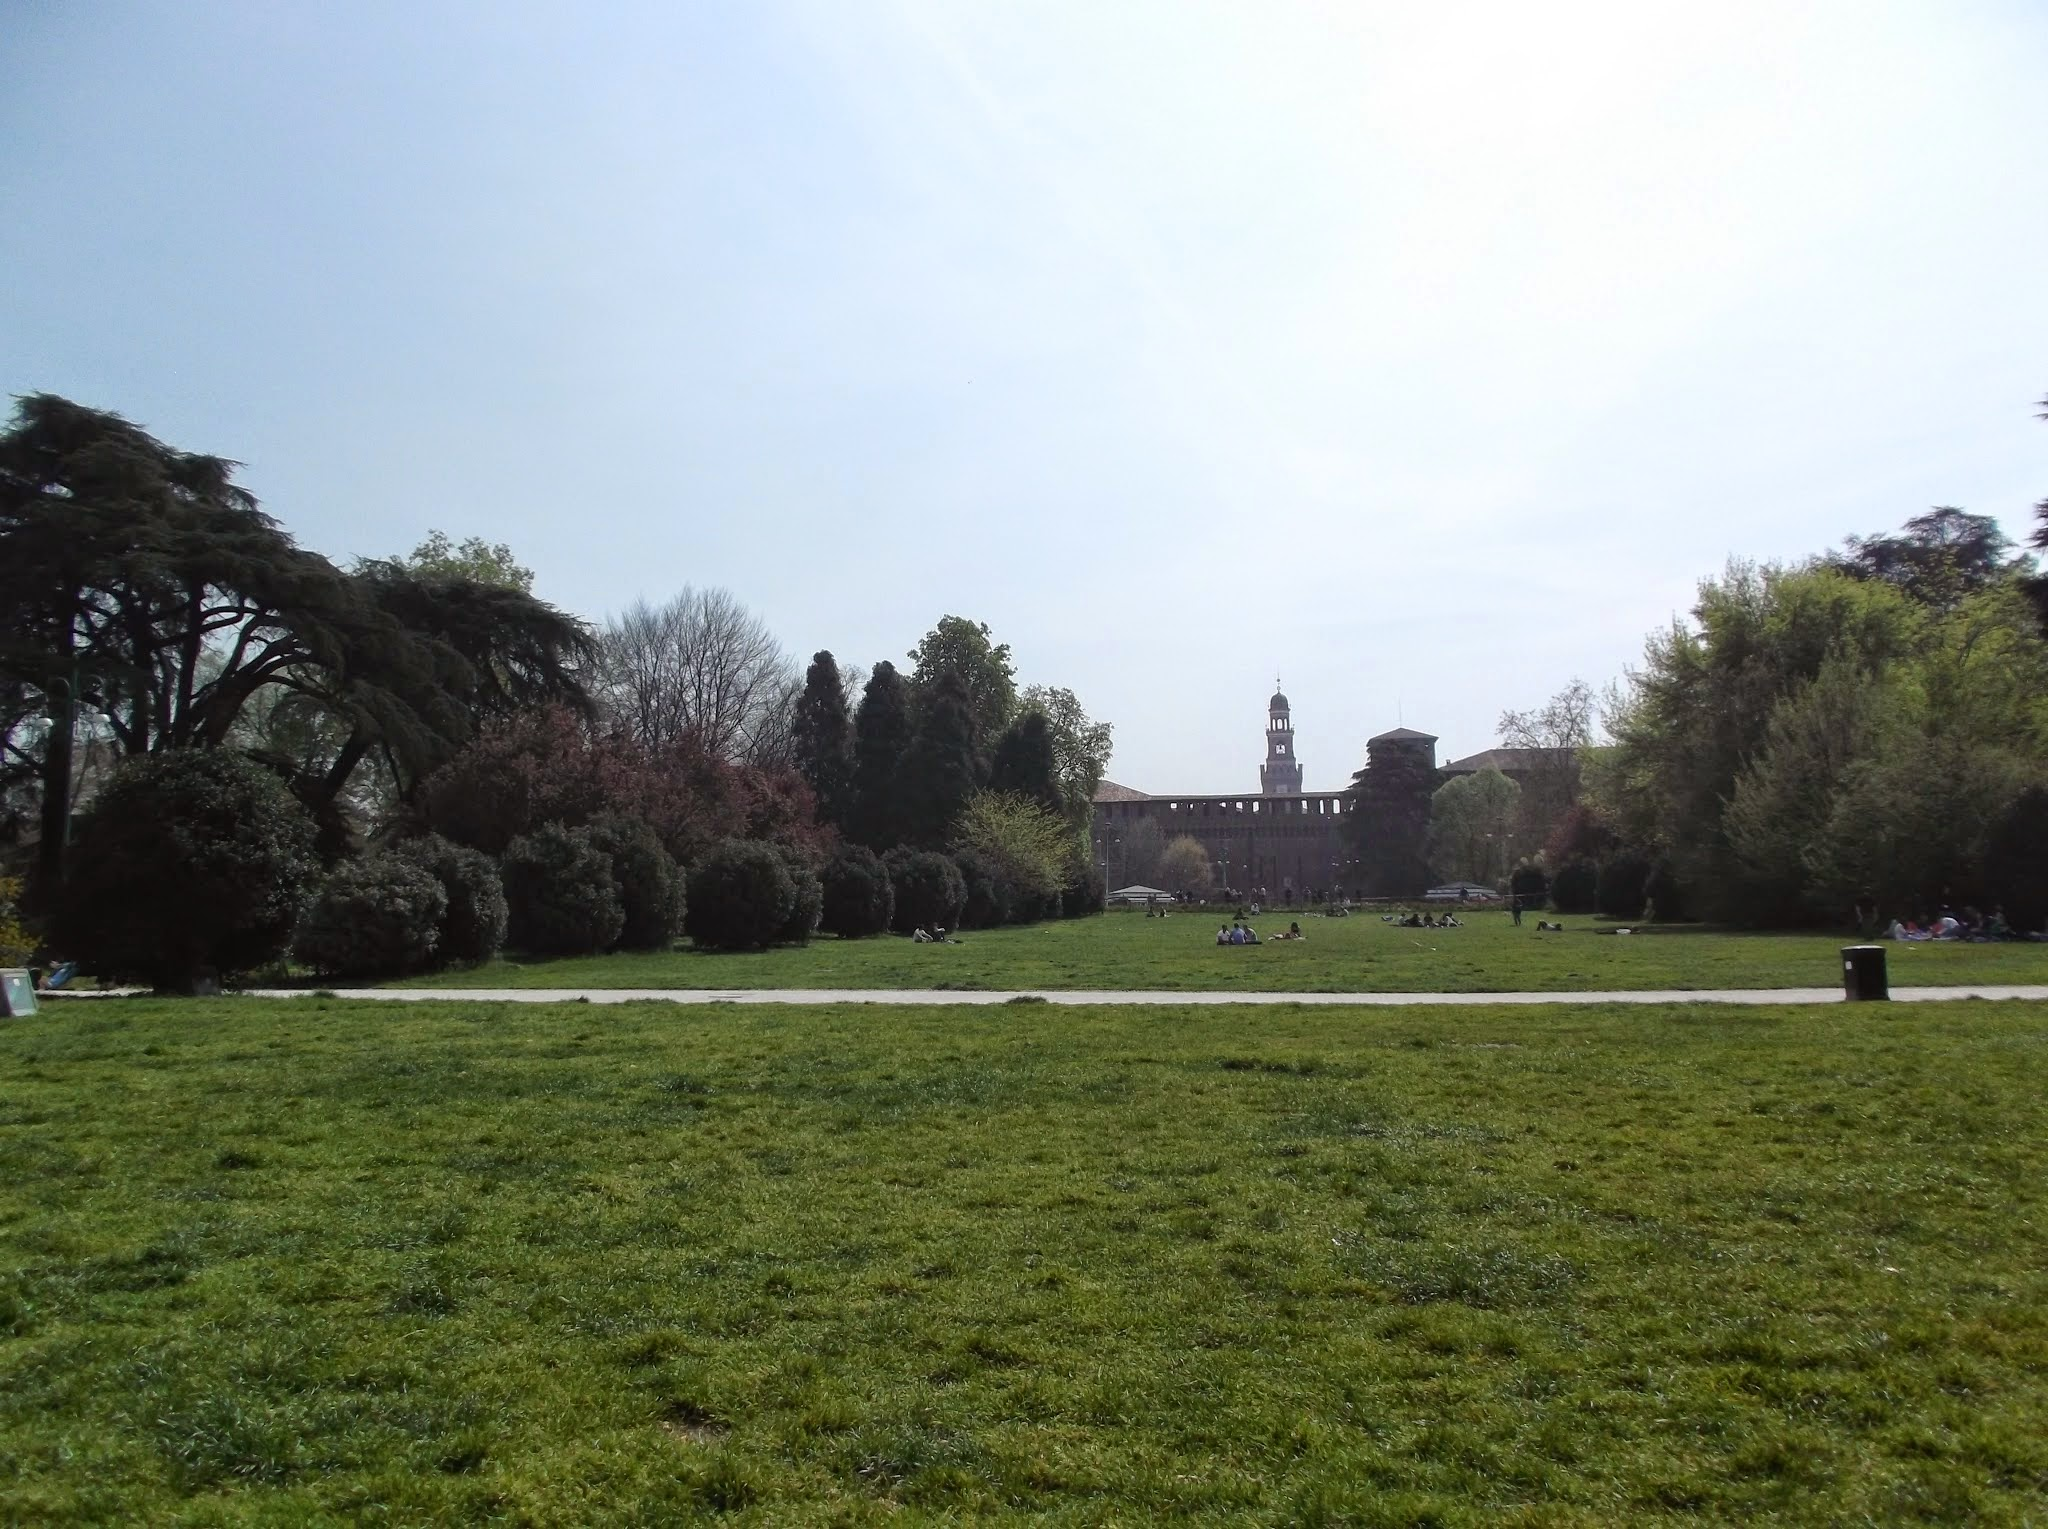 view across a park, blue sky